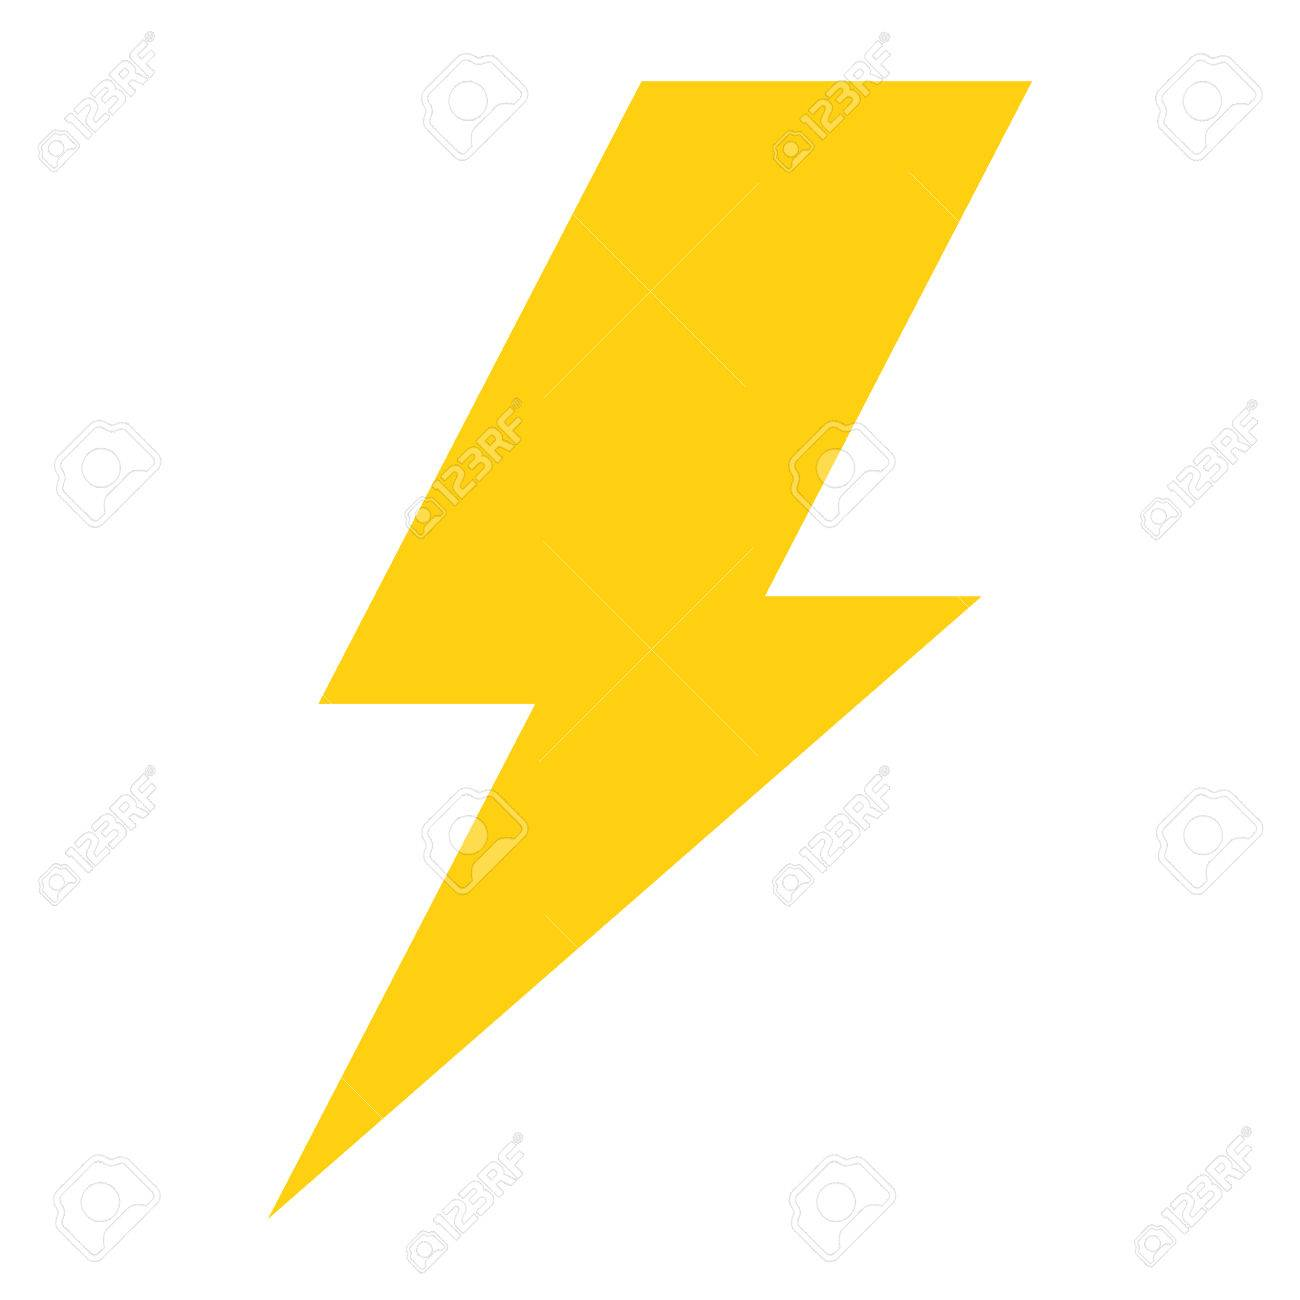 lightning bolt vector icon royalty free cliparts vectors and stock illustration image 49650904 lightning bolt vector icon